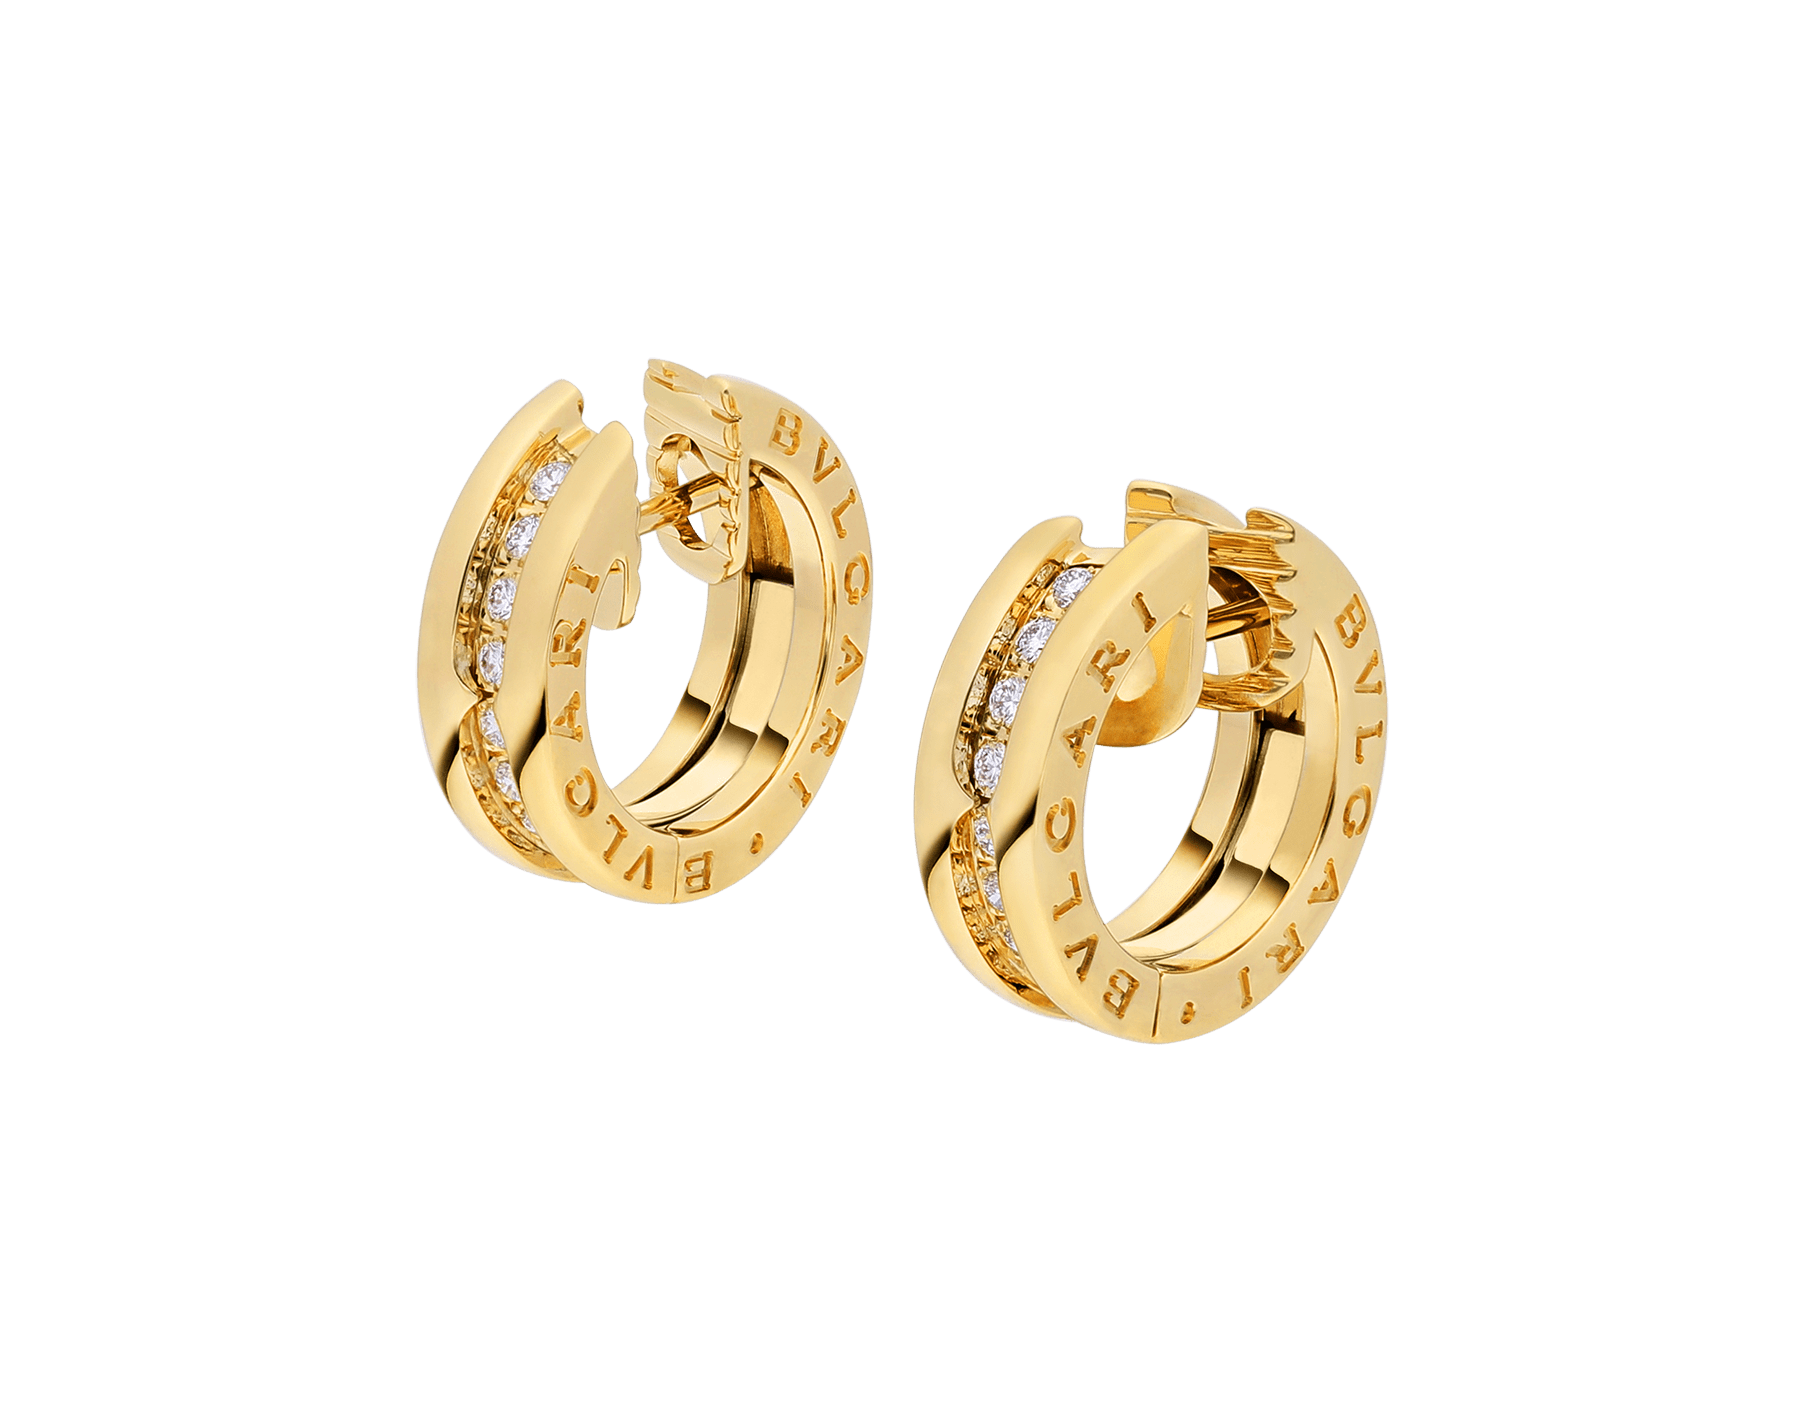 B.zero1 small hoop earrings in 18 kt yellow gold set with pavé diamonds on the spiral 357495 image 2